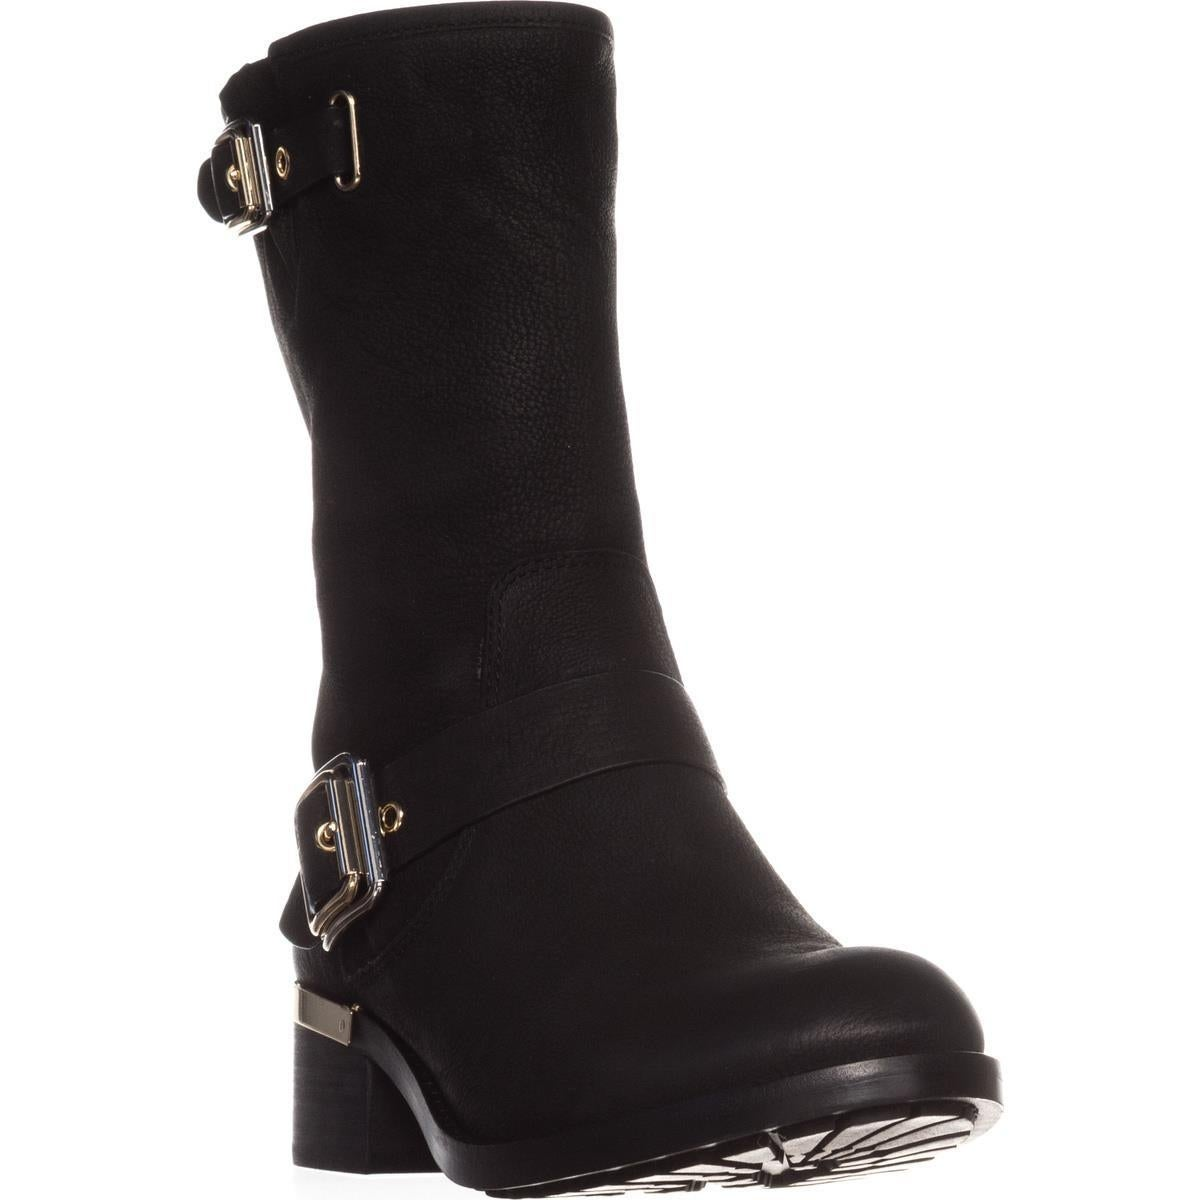 92795ed70a2 Shop vince camuto windy mid calf motorcycle boots black leather jpg  1200x1200 Vince camuto tall shaft